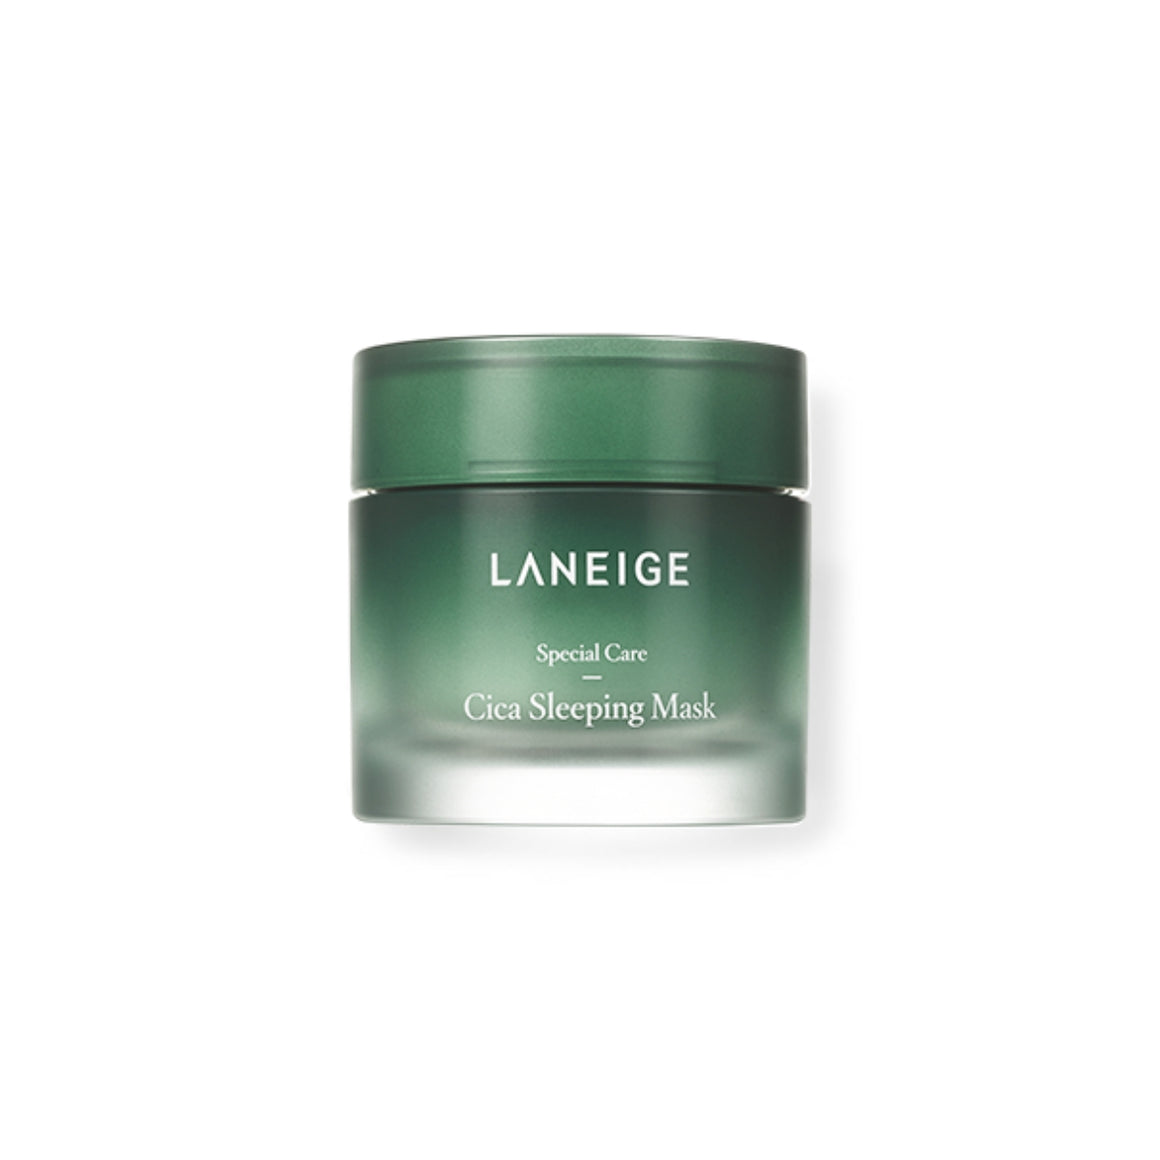 Laneige Cica Sleeping Mask Special Care 60 mL